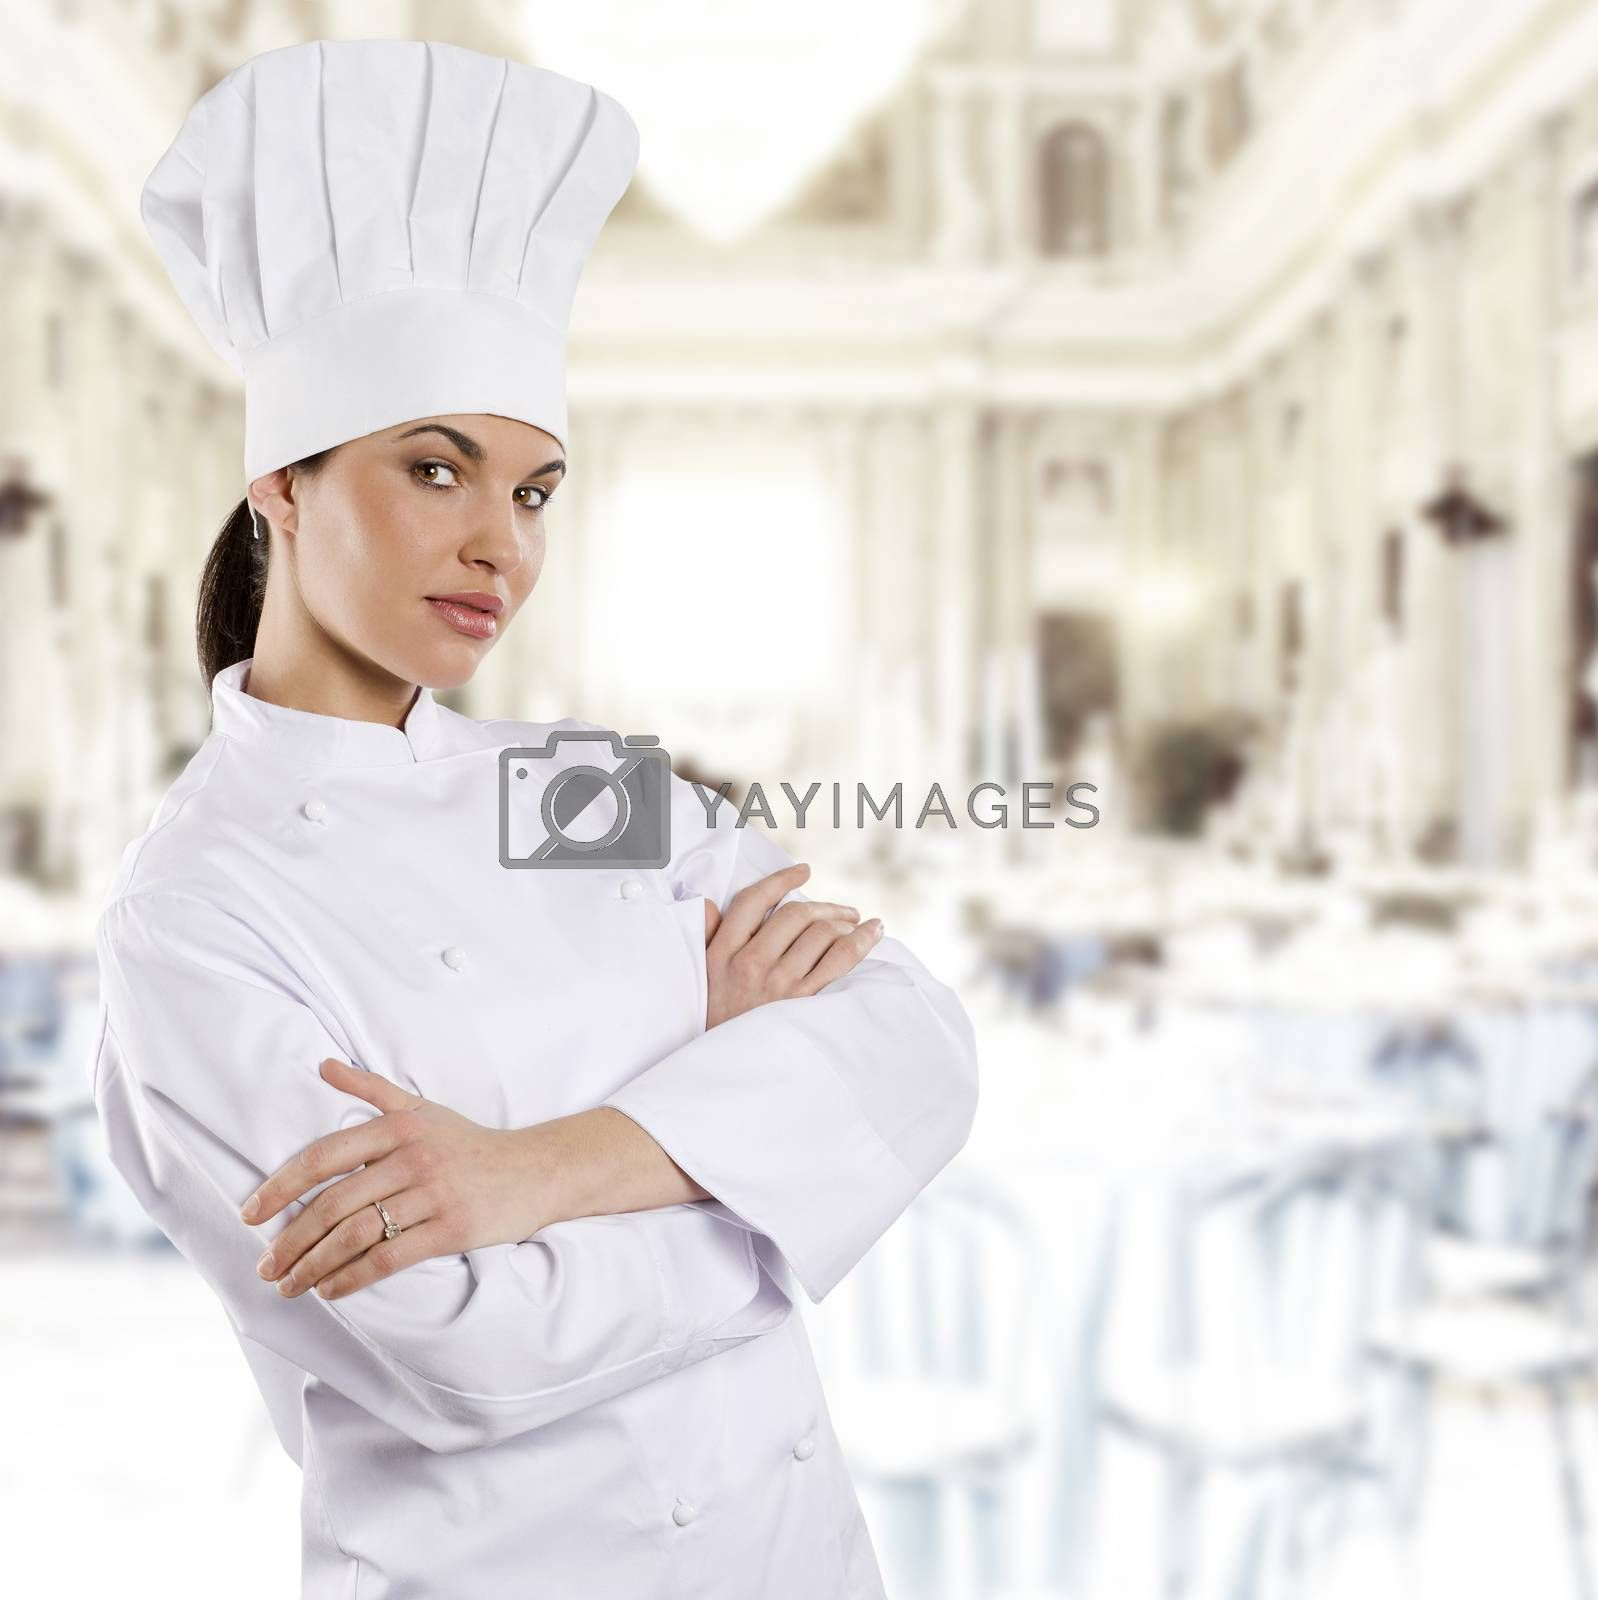 Royalty free image of the chef by fotoCD